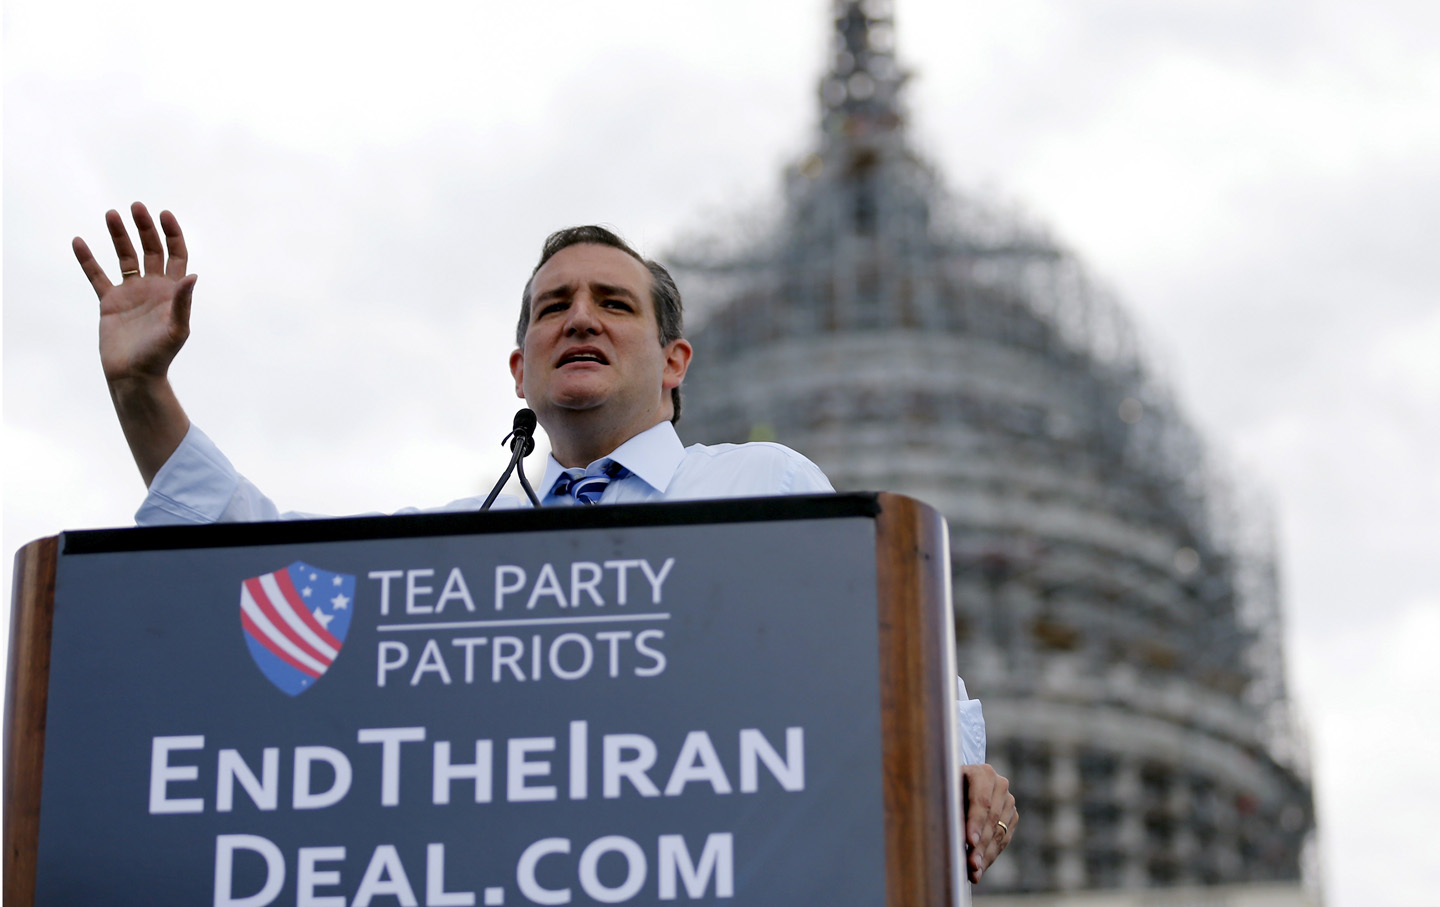 Ted Cruz on Iran Deal